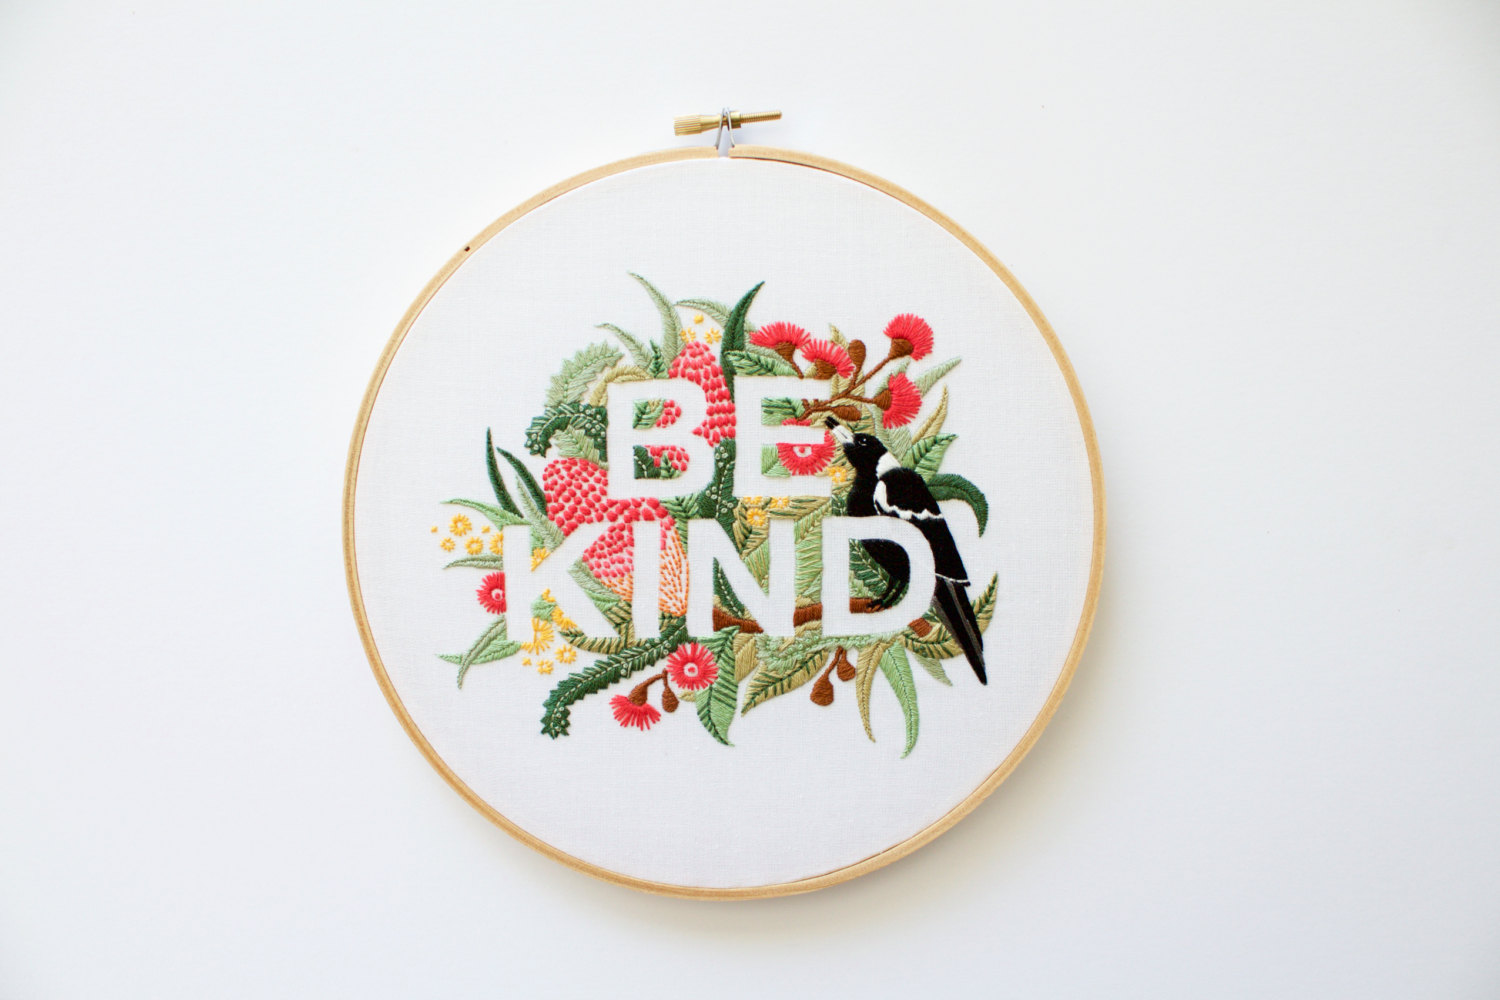 Be Kind Embroidery Pattern by Threadfolk on Etsy